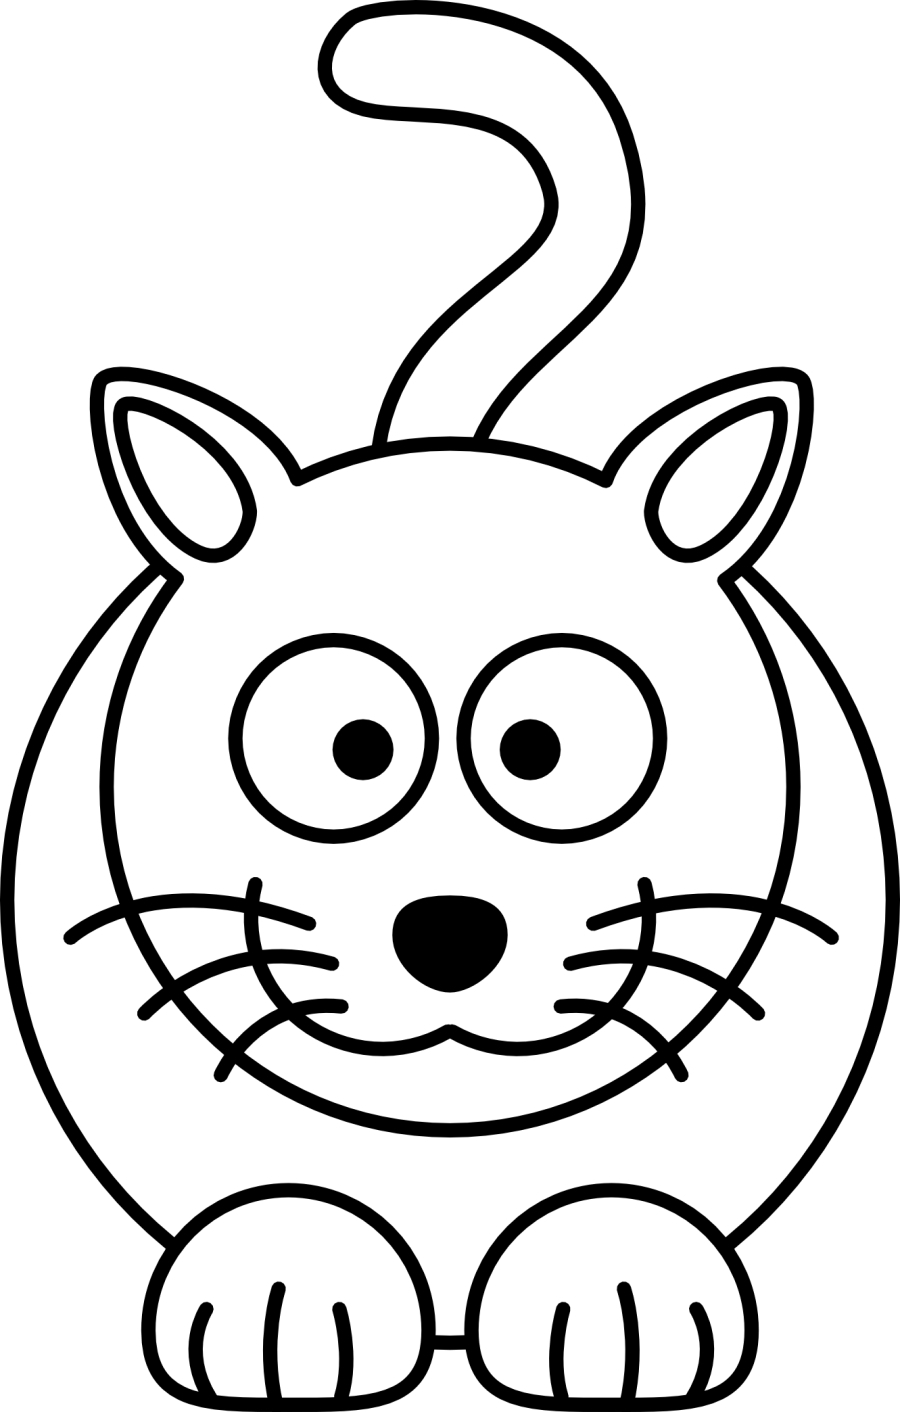 Simple drawing for kids at getdrawings free for personal use 900x1412 simple drawing for kids simple drawings for kids thecheapjerseys Choice Image